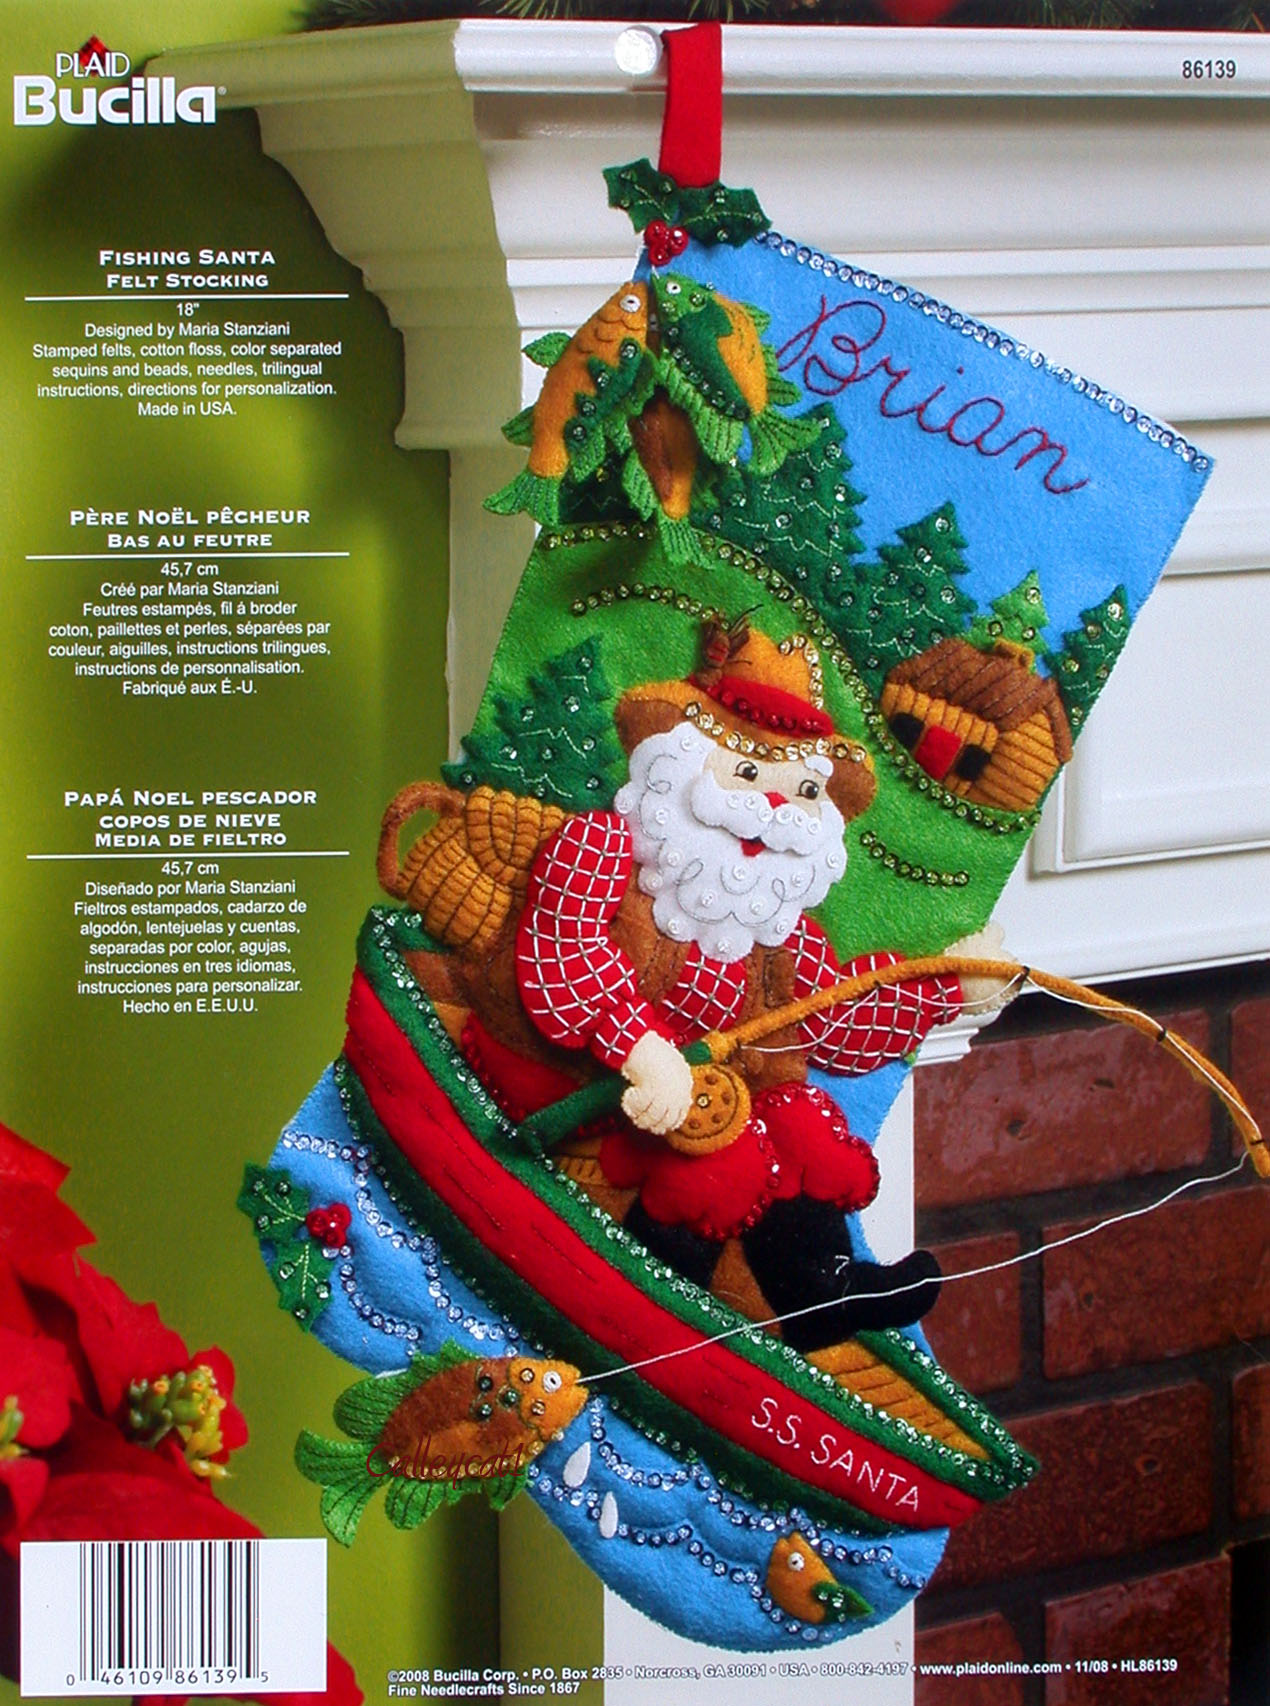 Fishing santa 18 bucilla felt christmas stocking kit for Fish christmas stocking